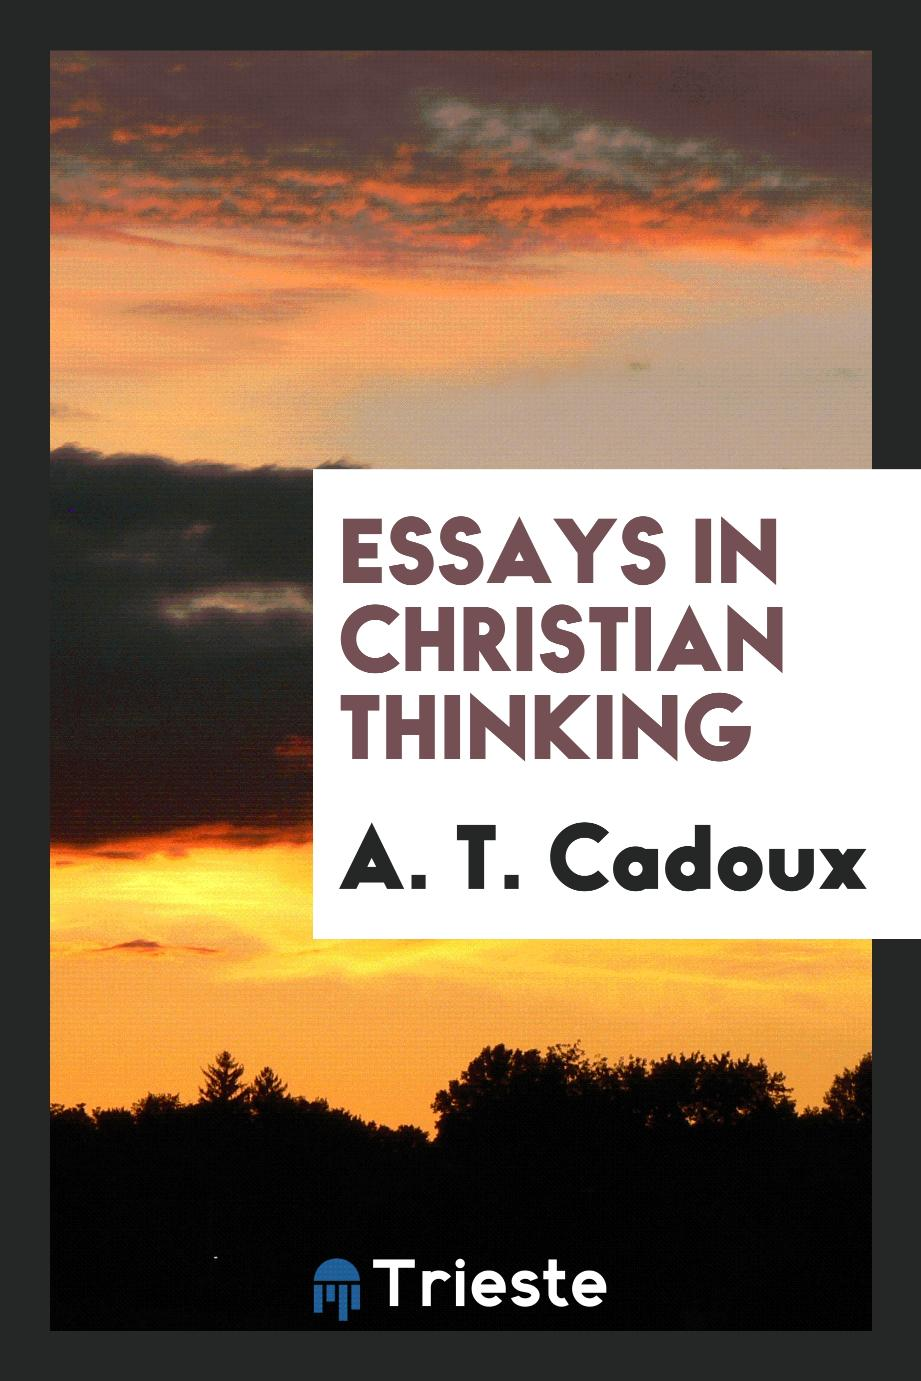 Essays in Christian thinking